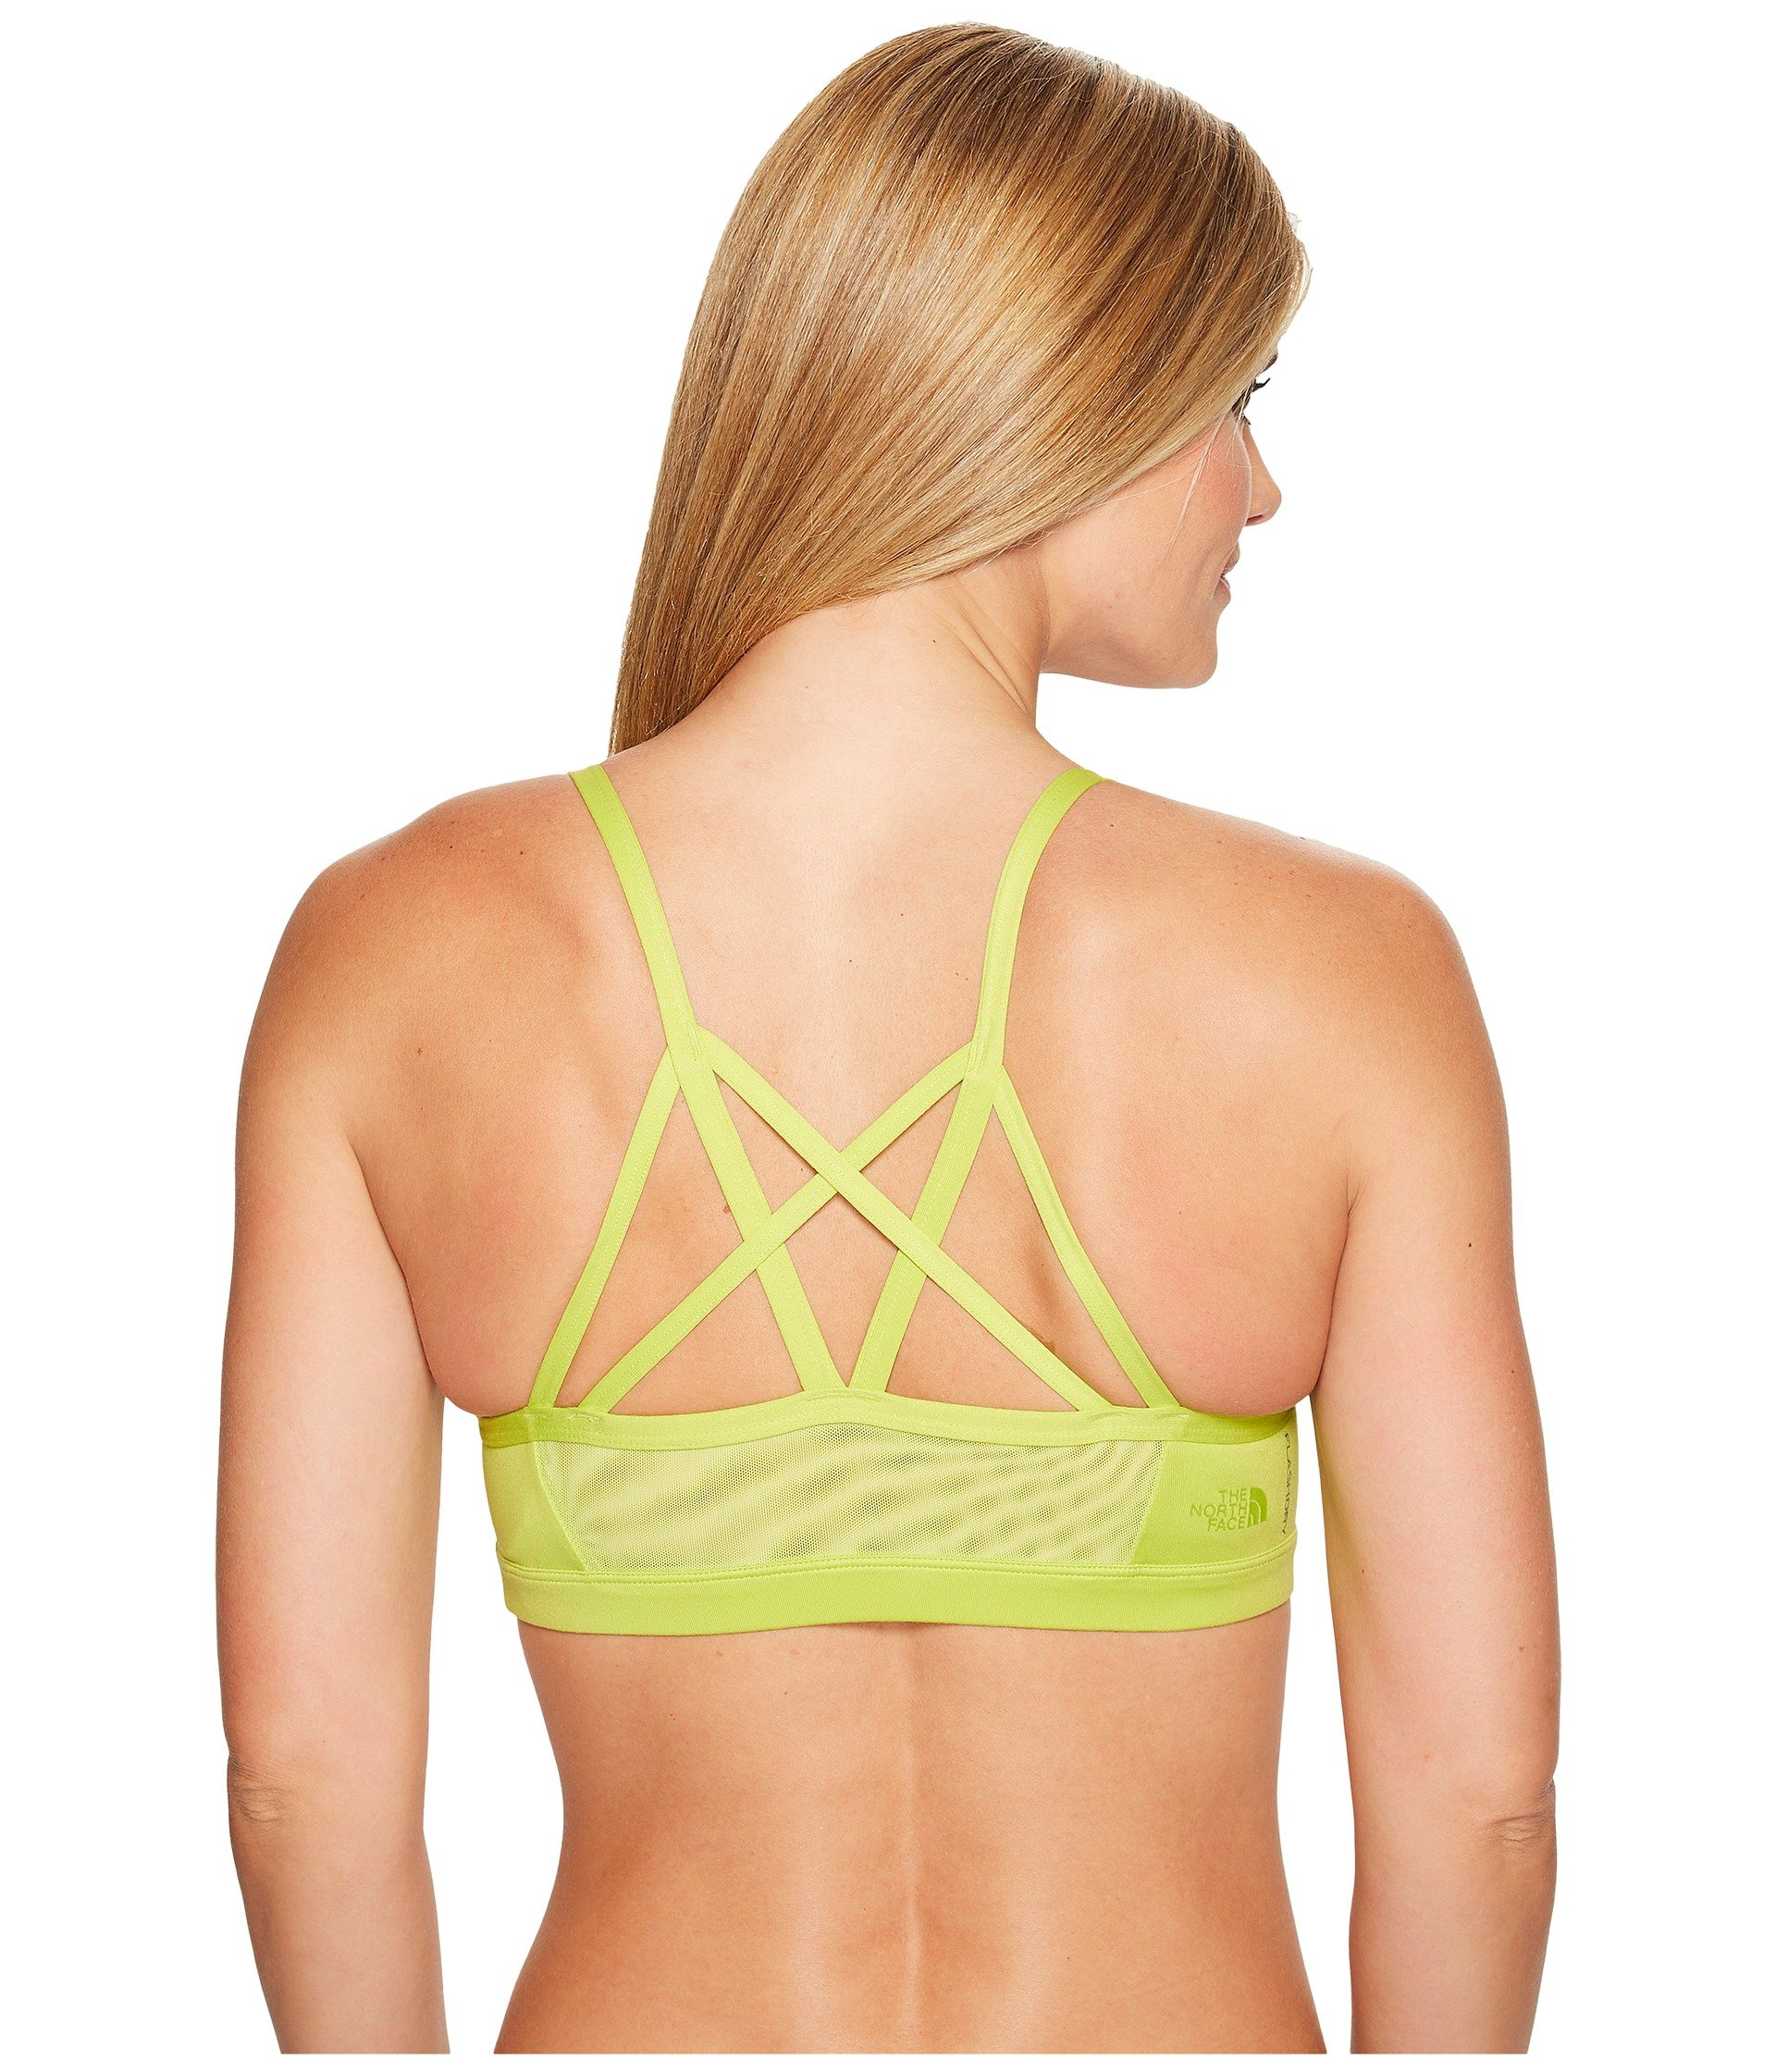 Brasier The North Face Motivation Strappy Bra  + The North Face en VeoyCompro.net